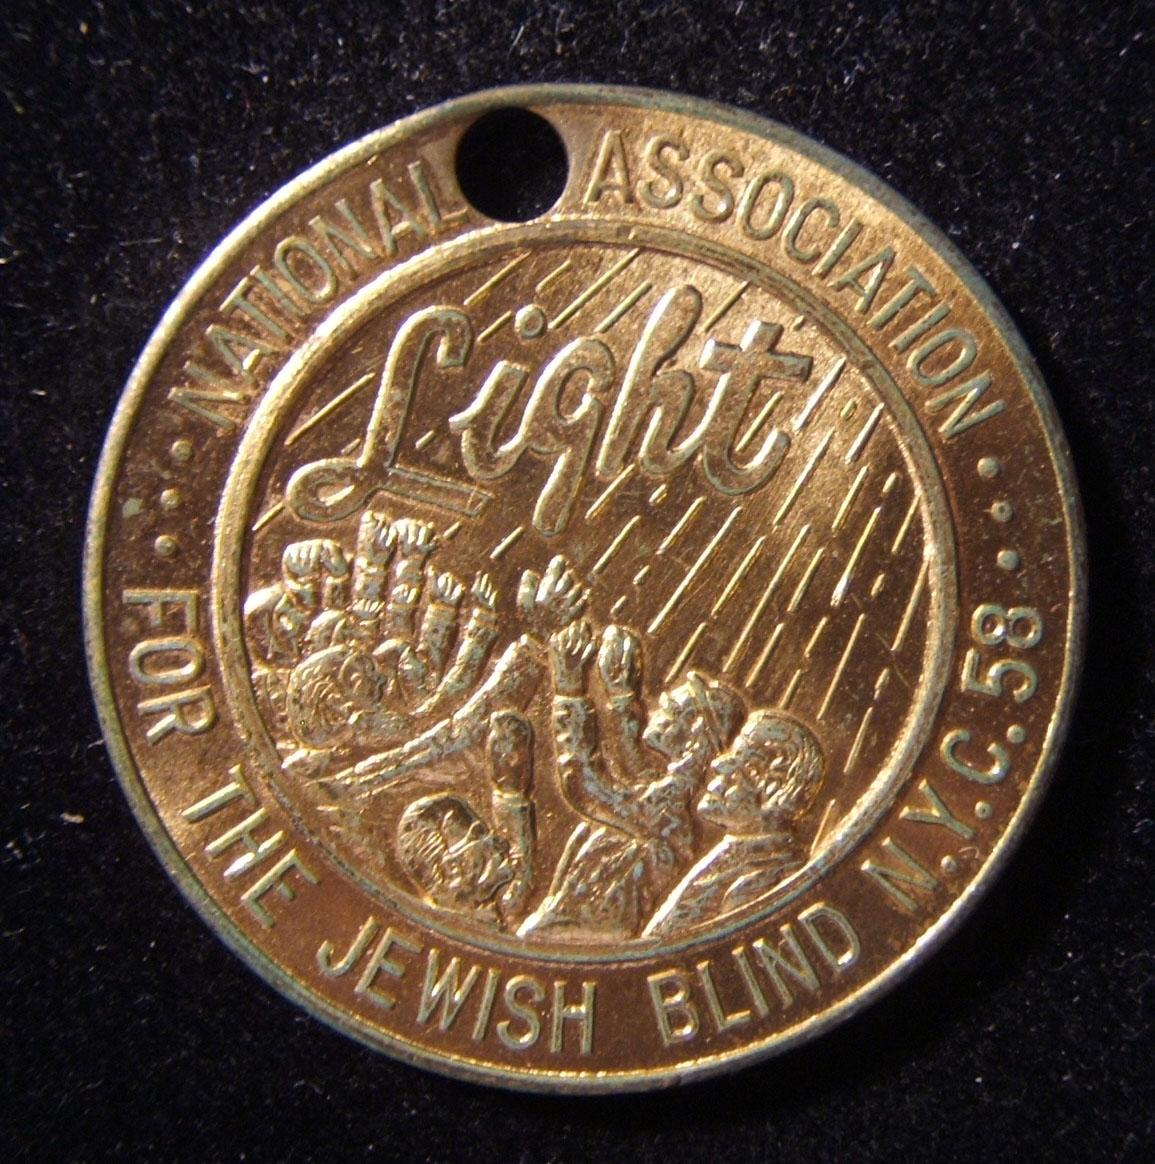 New York donation medallion of National Association for Jewish Blind (1958)